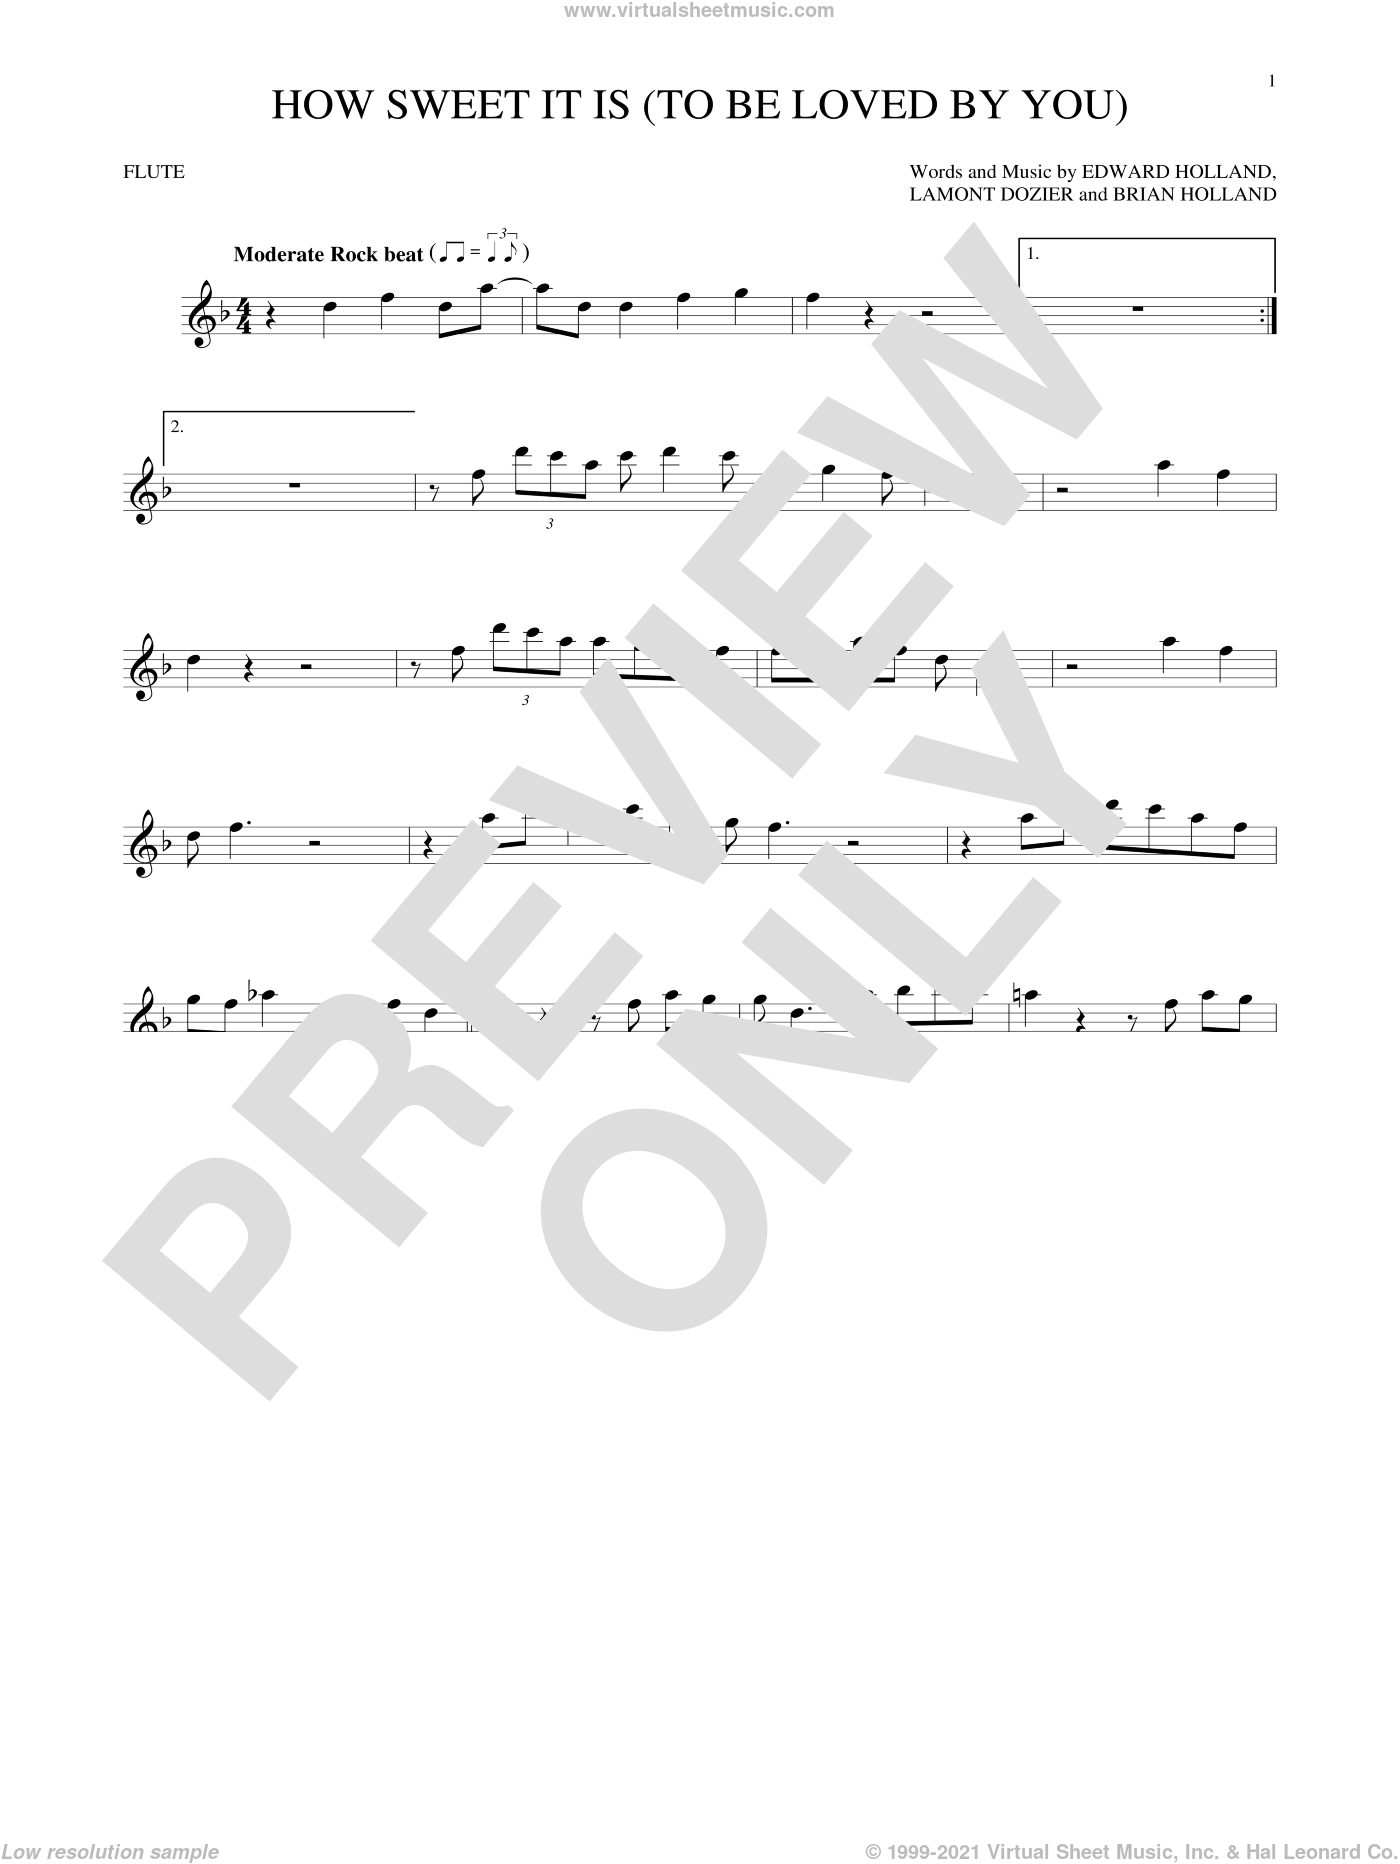 How Sweet It Is (To Be Loved By You) sheet music for flute solo by James Taylor, Marvin Gaye, Brian Holland, Eddie Holland and Lamont Dozier, intermediate skill level